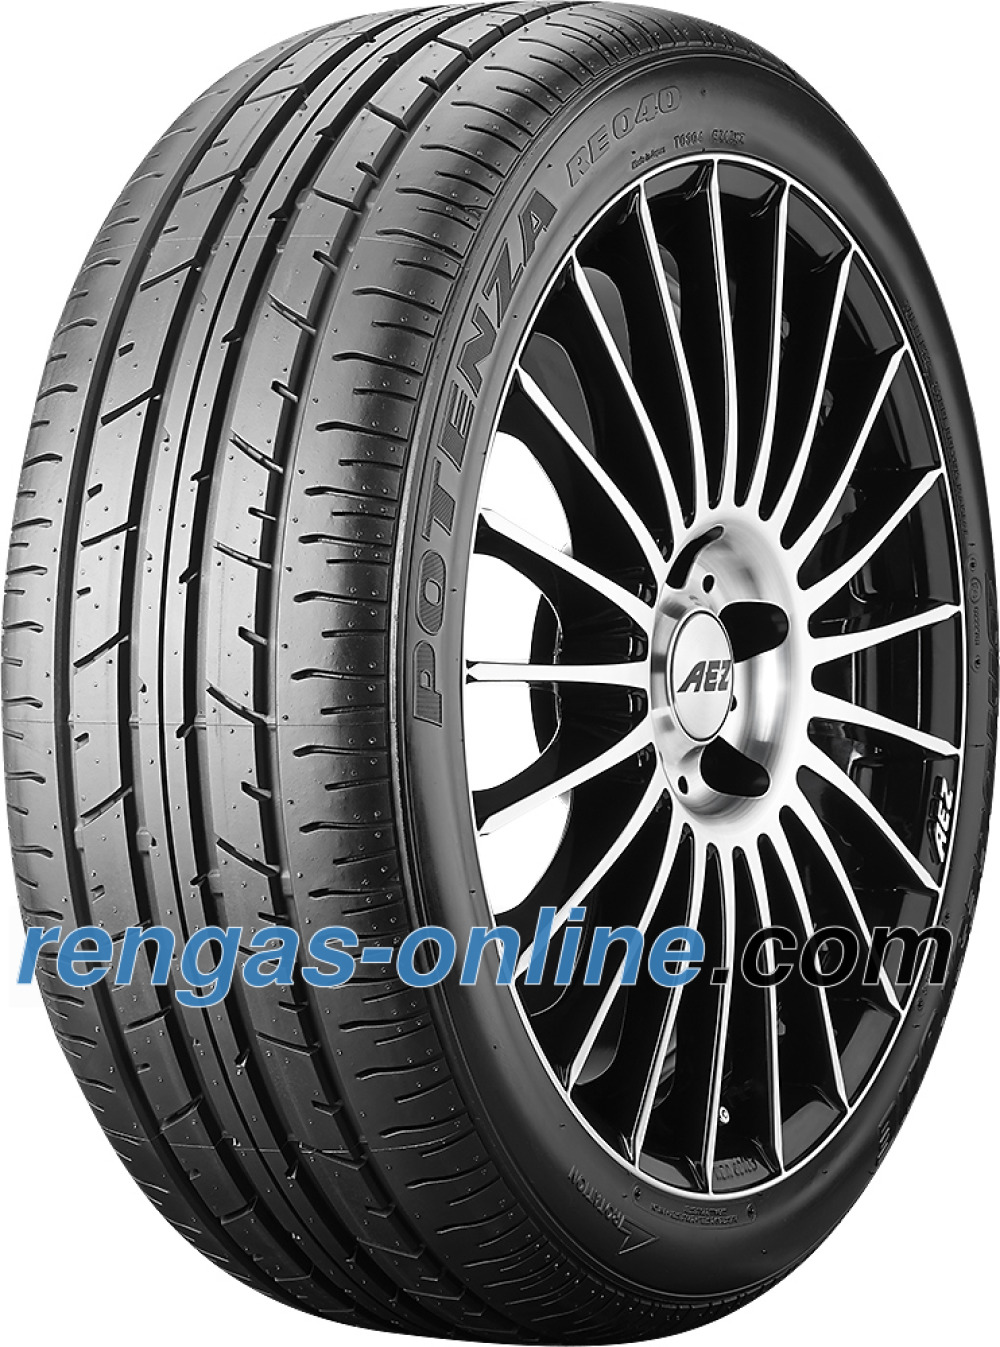 bridgestone-potenza-re-040-23550-r18-101y-xl